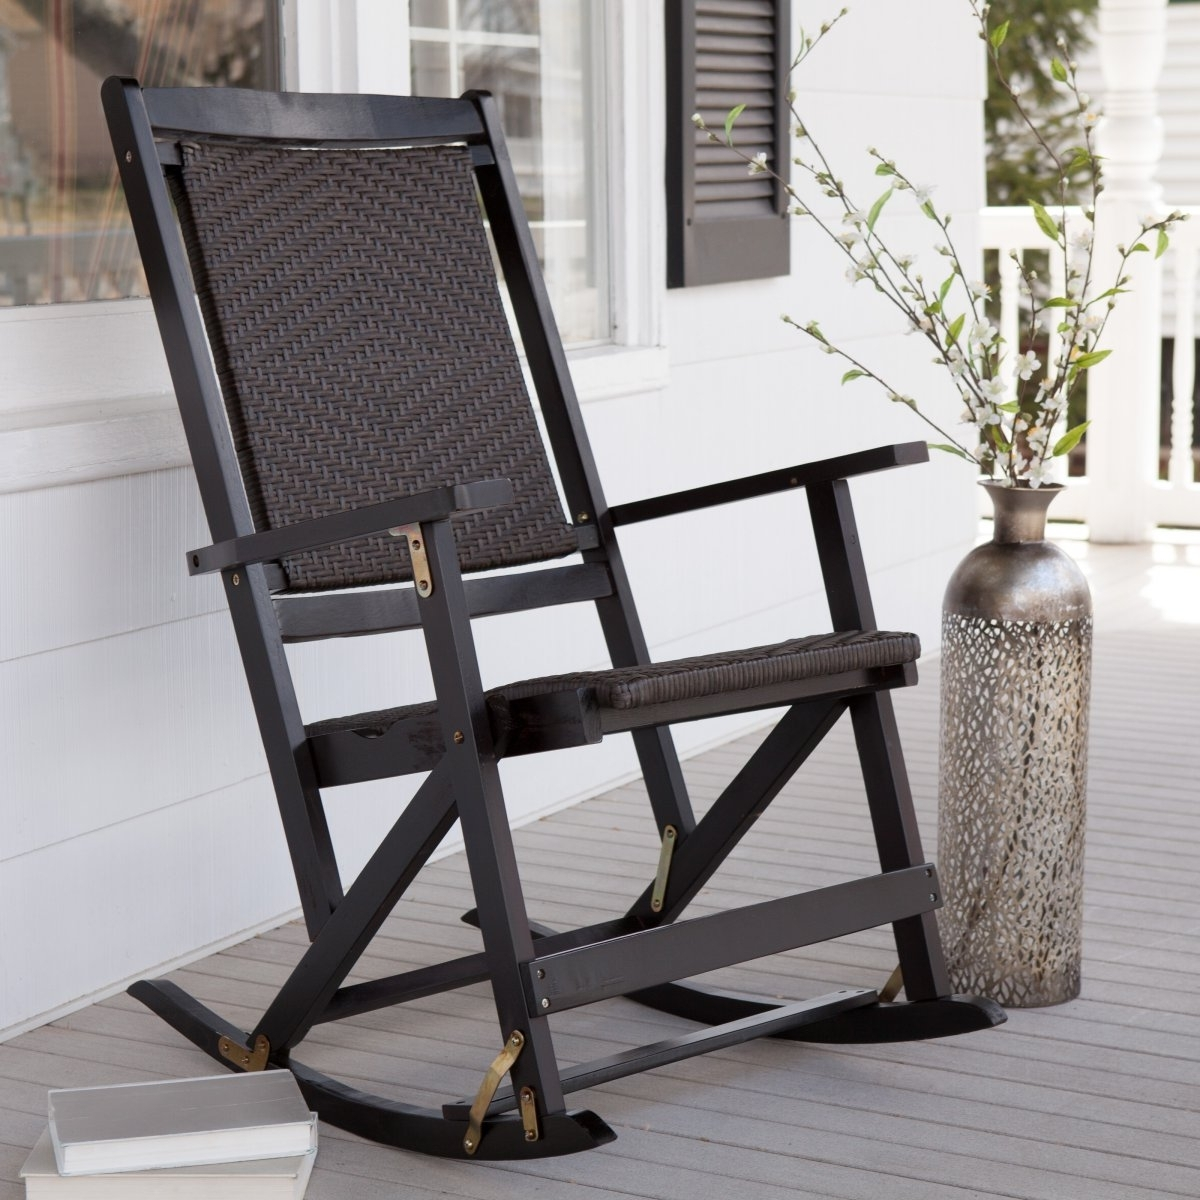 Patio Metal Rocking Chairs In Most Up To Date Choosing A Patio Rocking Chair — Wilson Home Ideas (View 14 of 15)